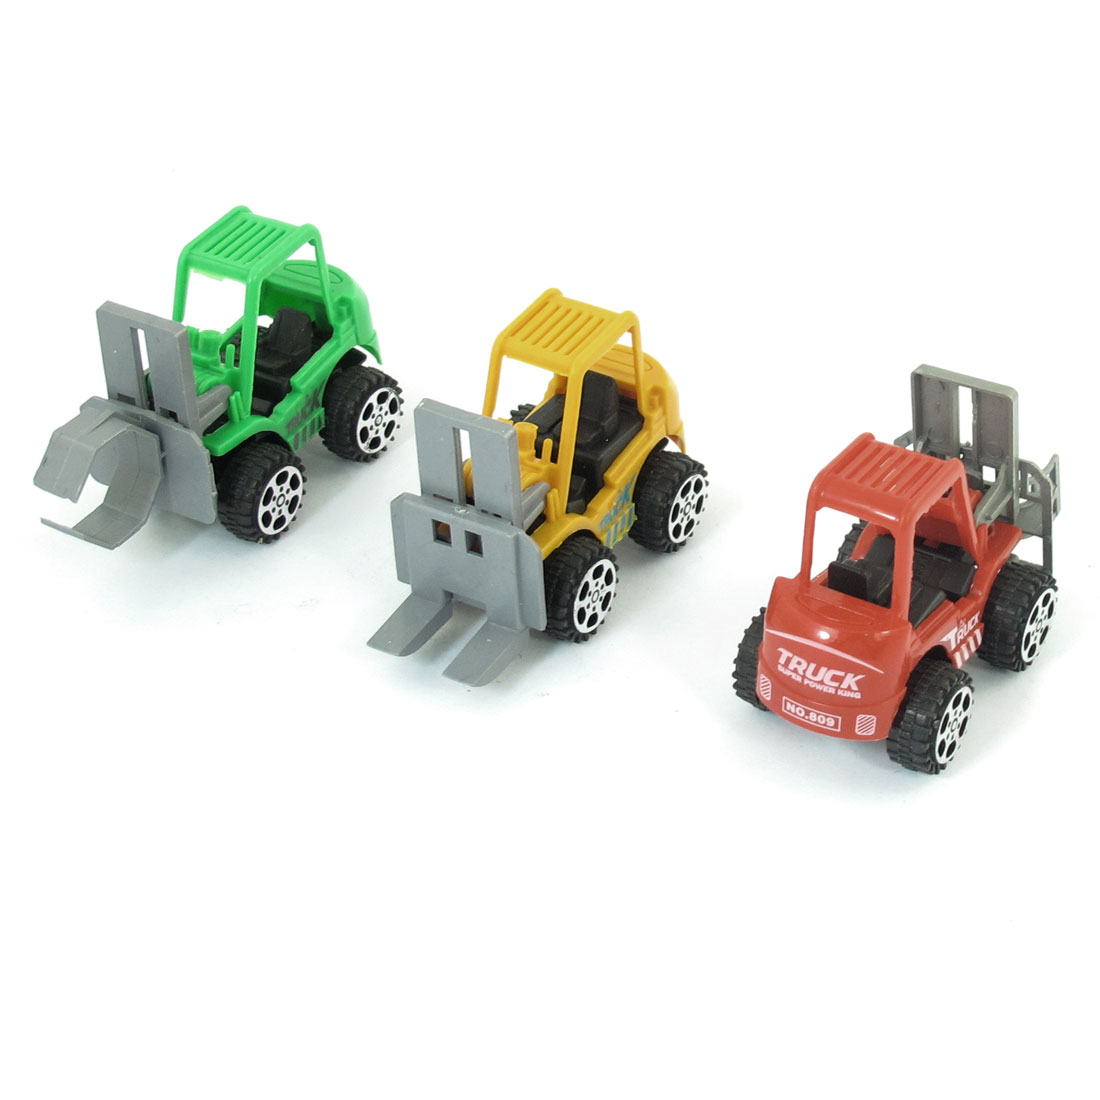 3 Pcs Assorted Color Plastic Construction Shovelcar Truck Toy for Children